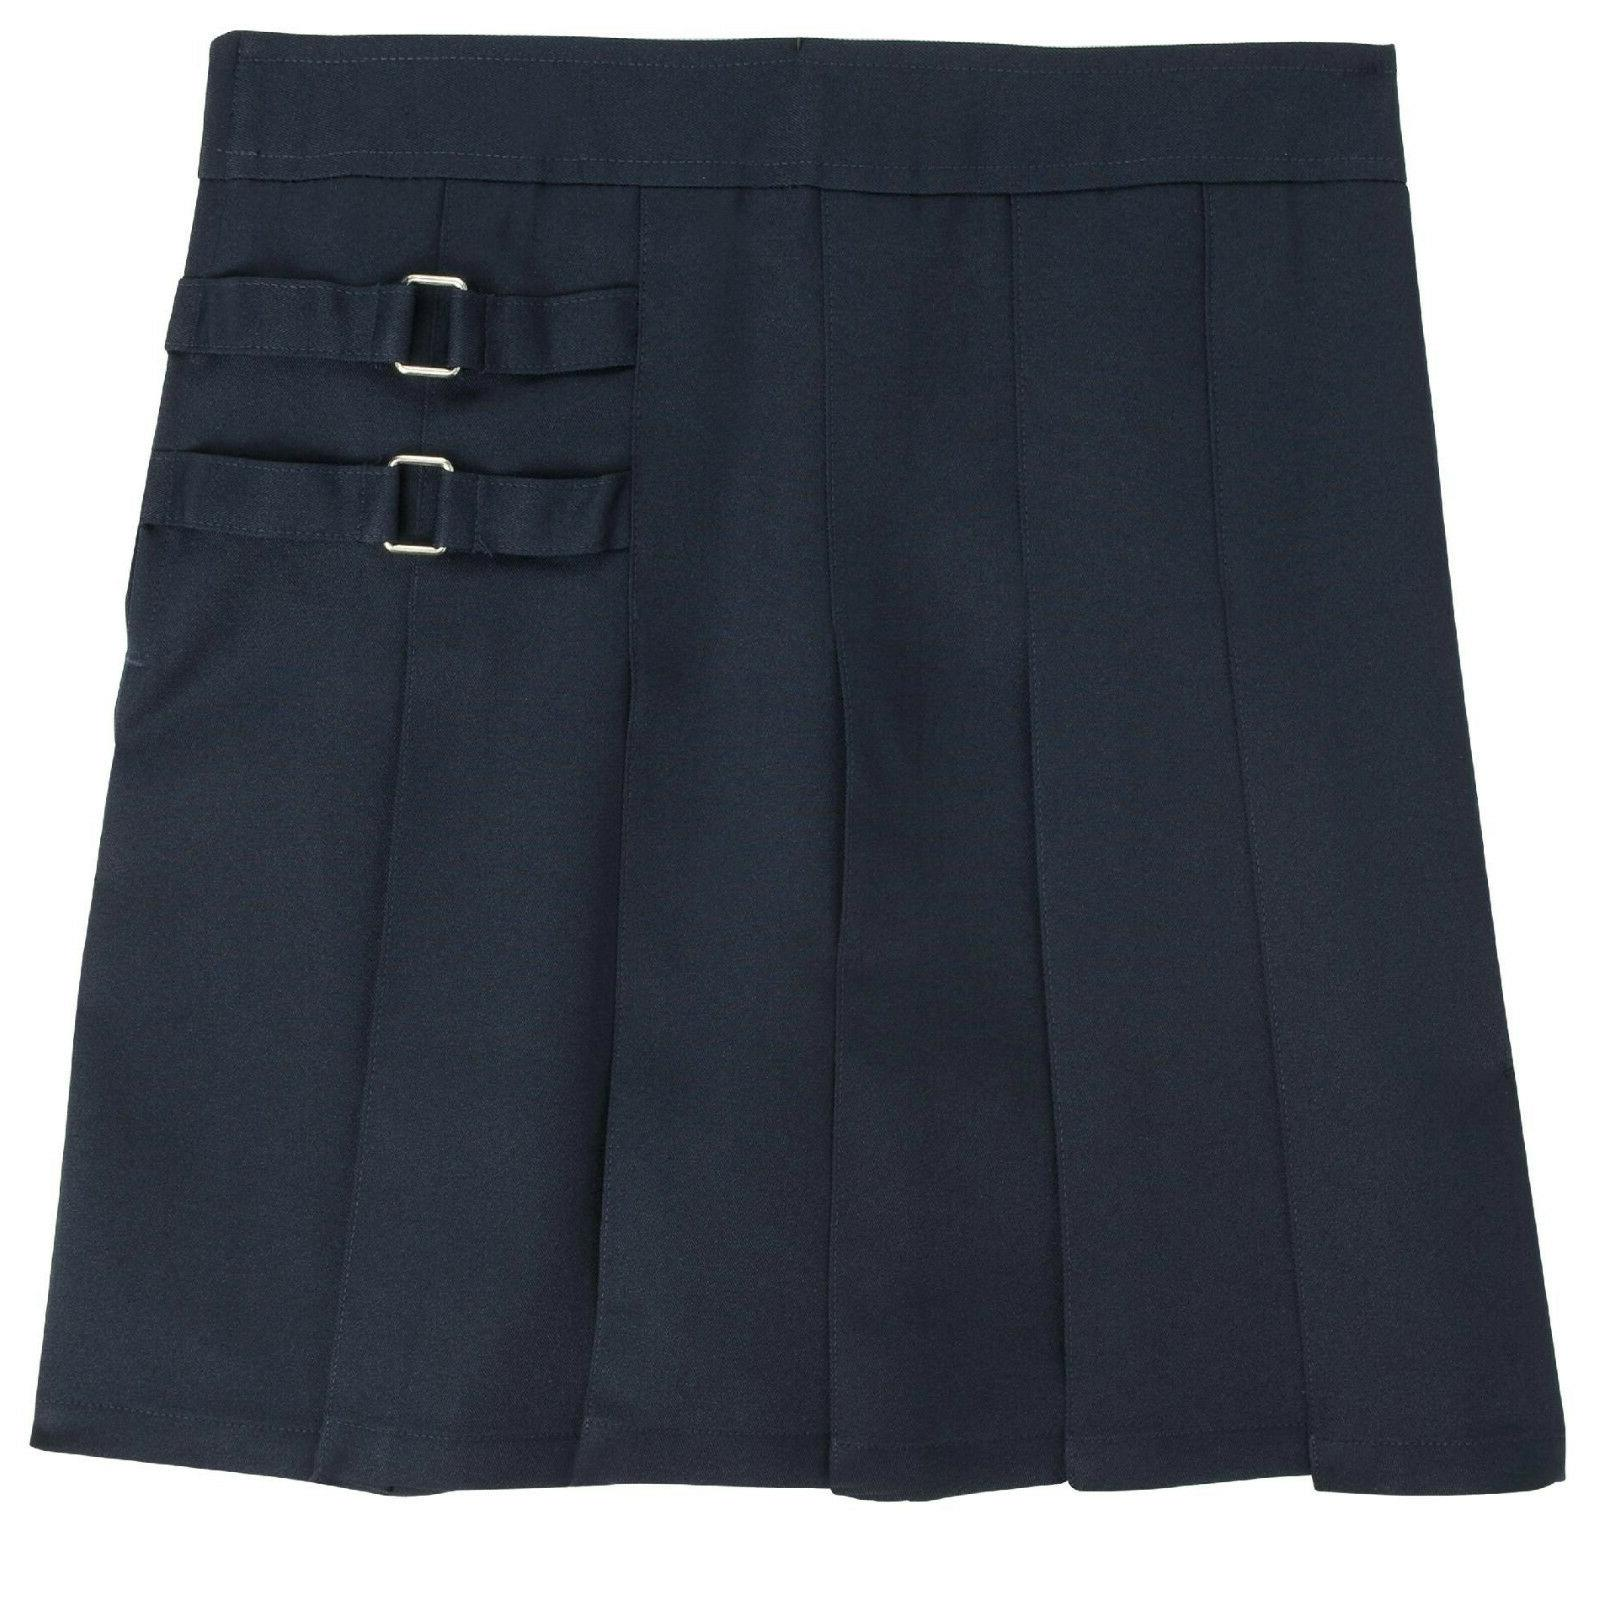 Girls Navy Skort Two Tab Scooter French Toast School Uniform